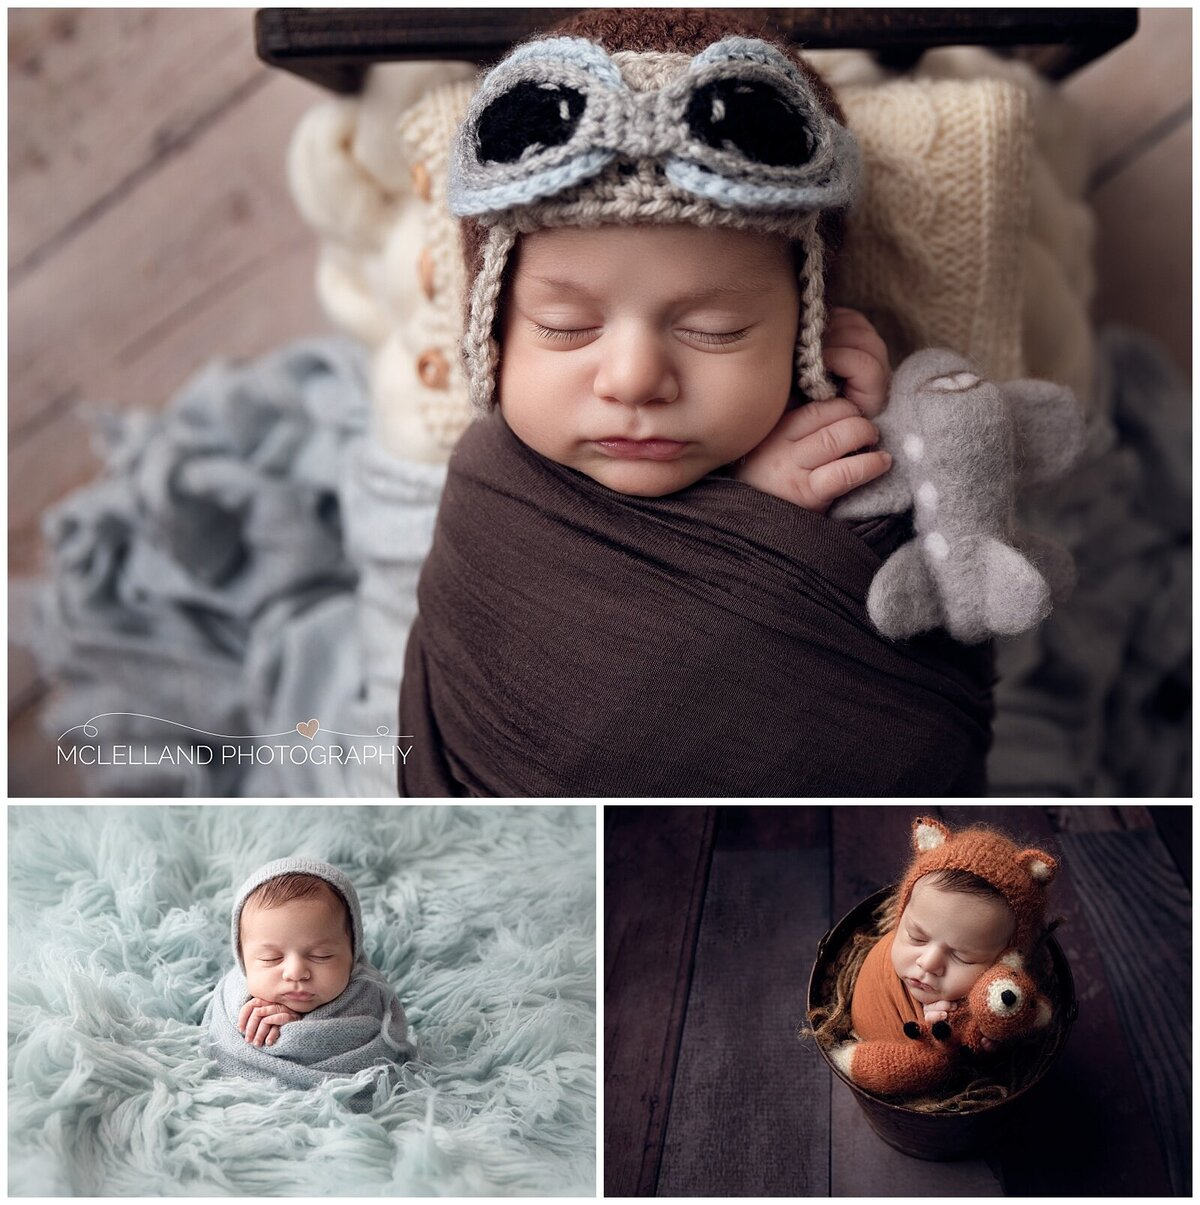 Baby boy at his newborn session with McLelland Photography